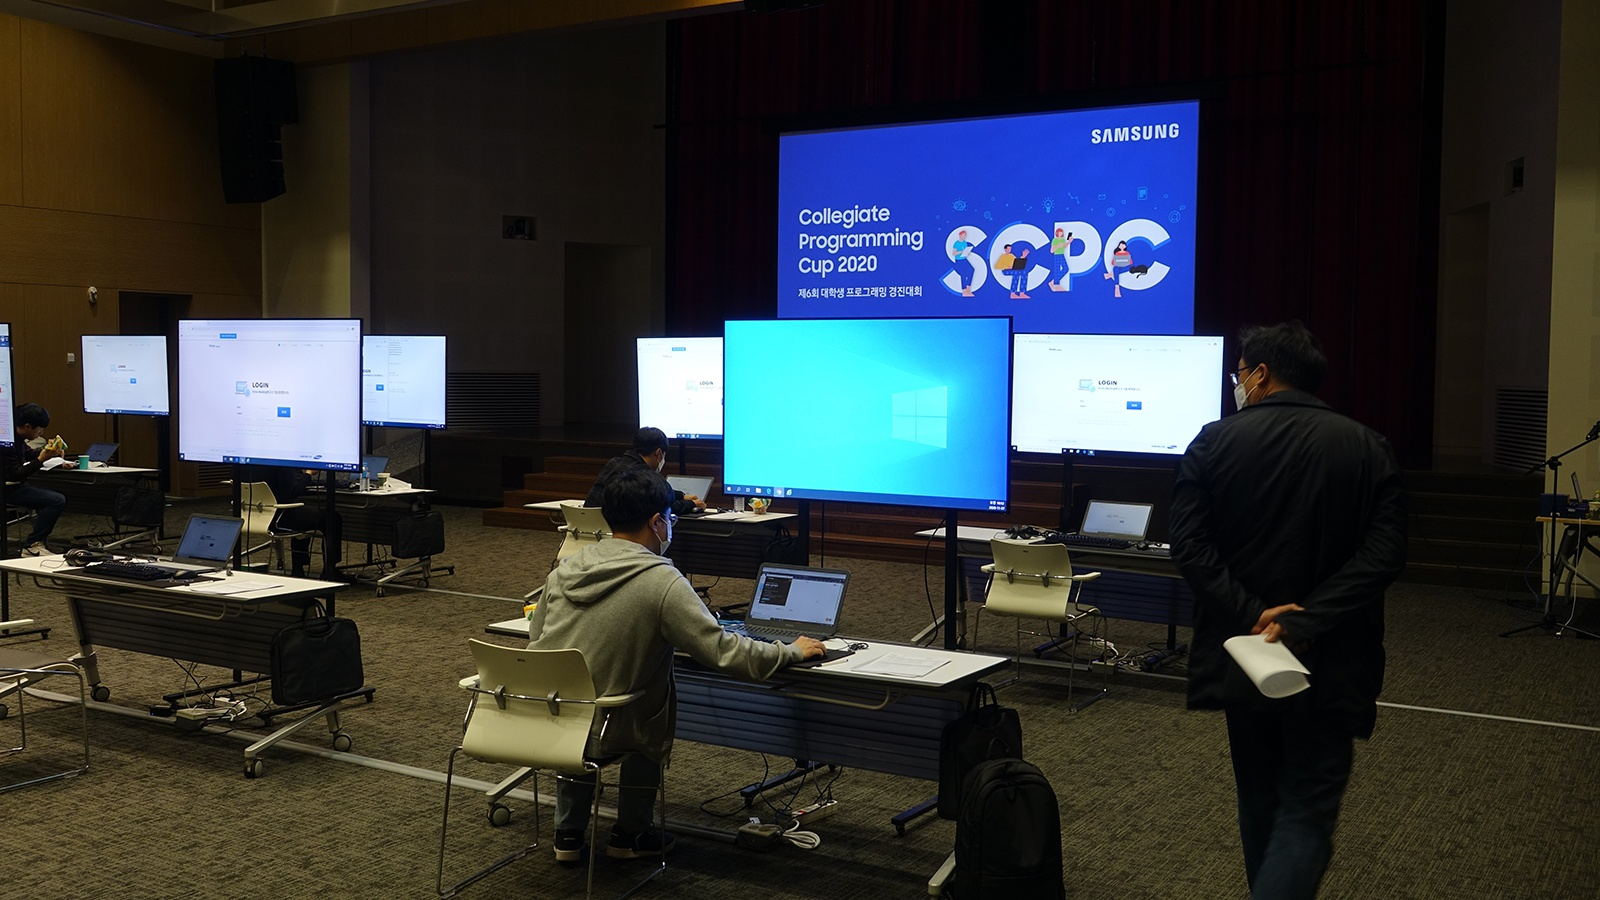 The 6th SCPC Finals 2